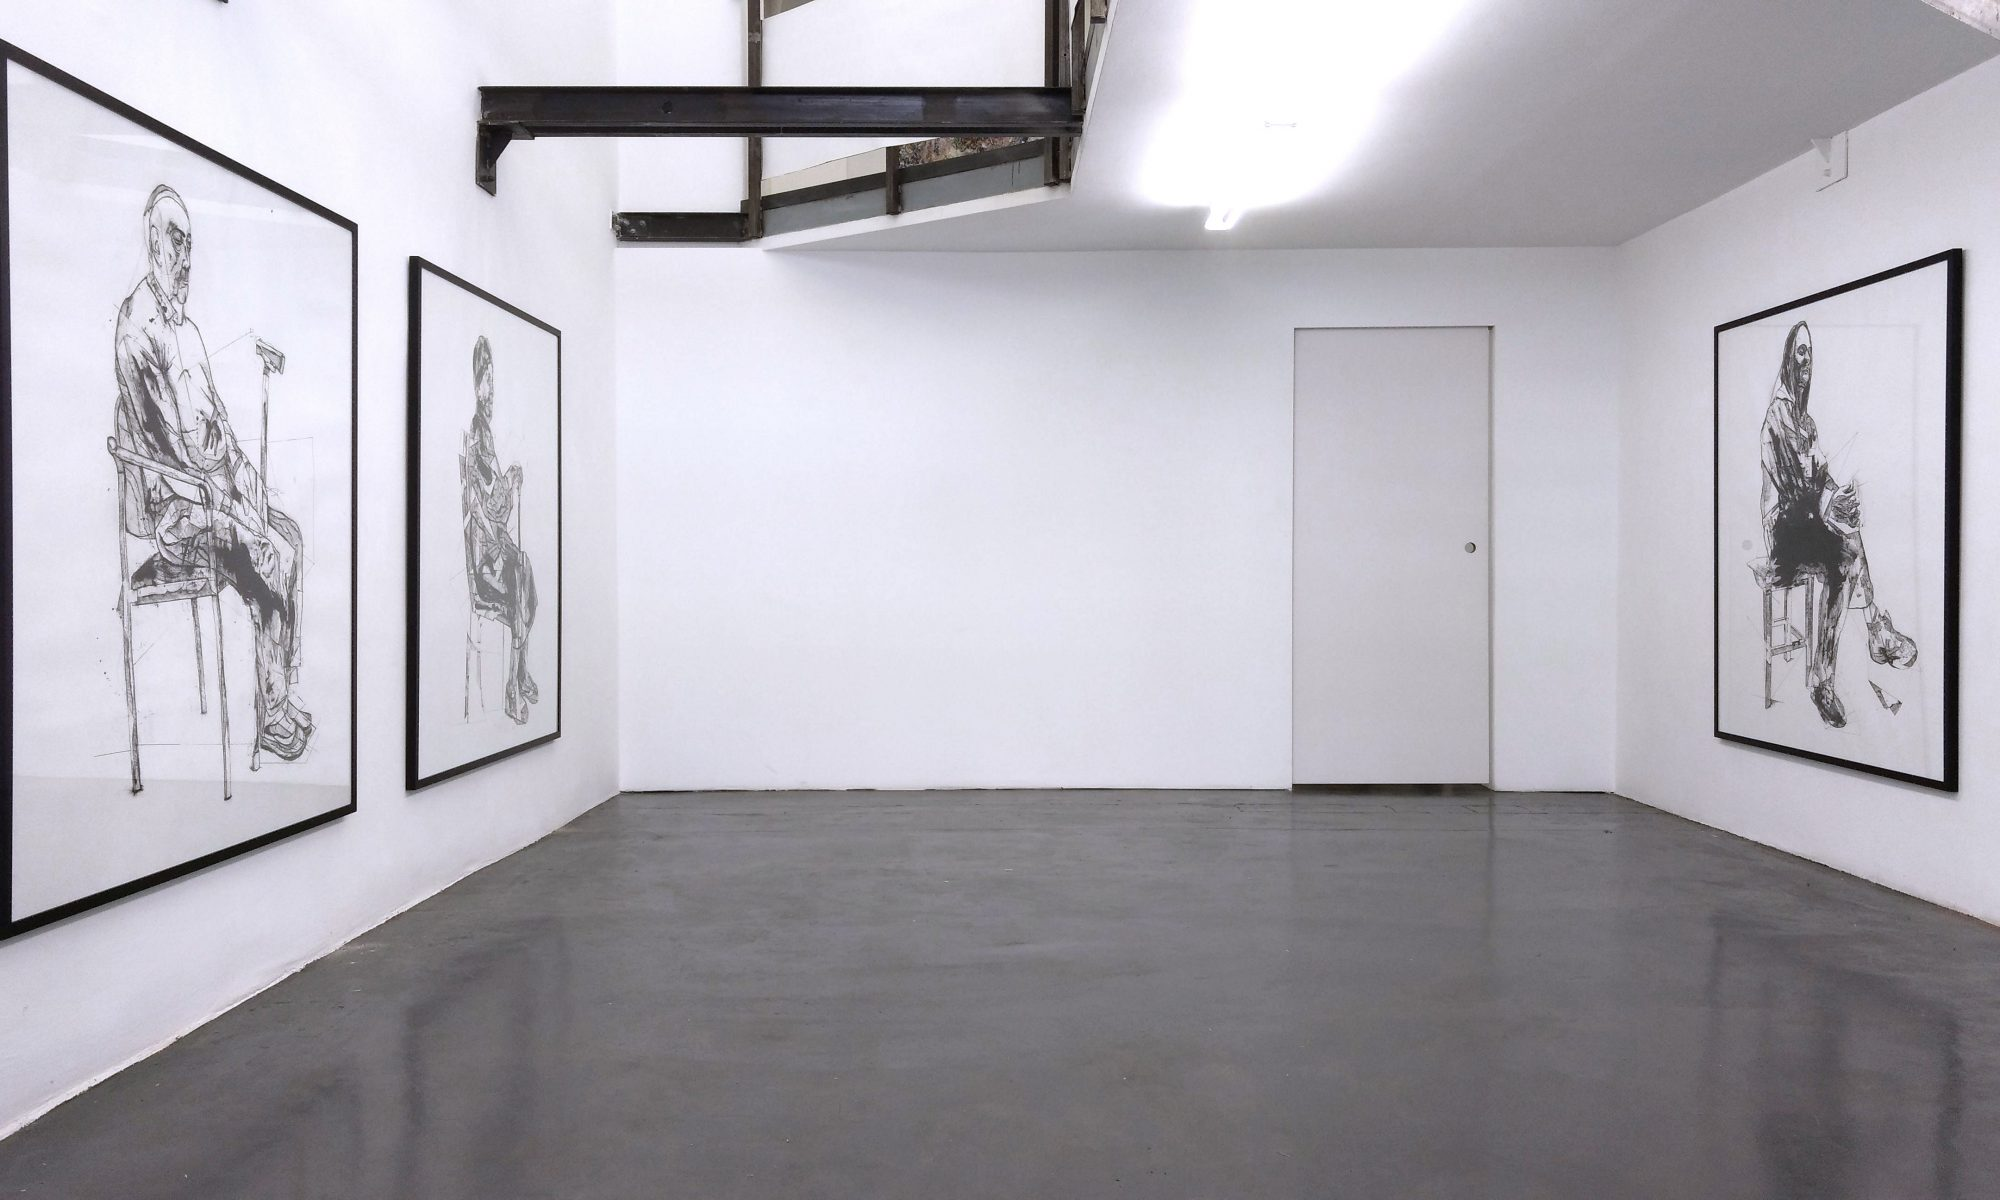 Installation View, Christian Bazant-Hegemark, unttld contemporary Vienna, 2019